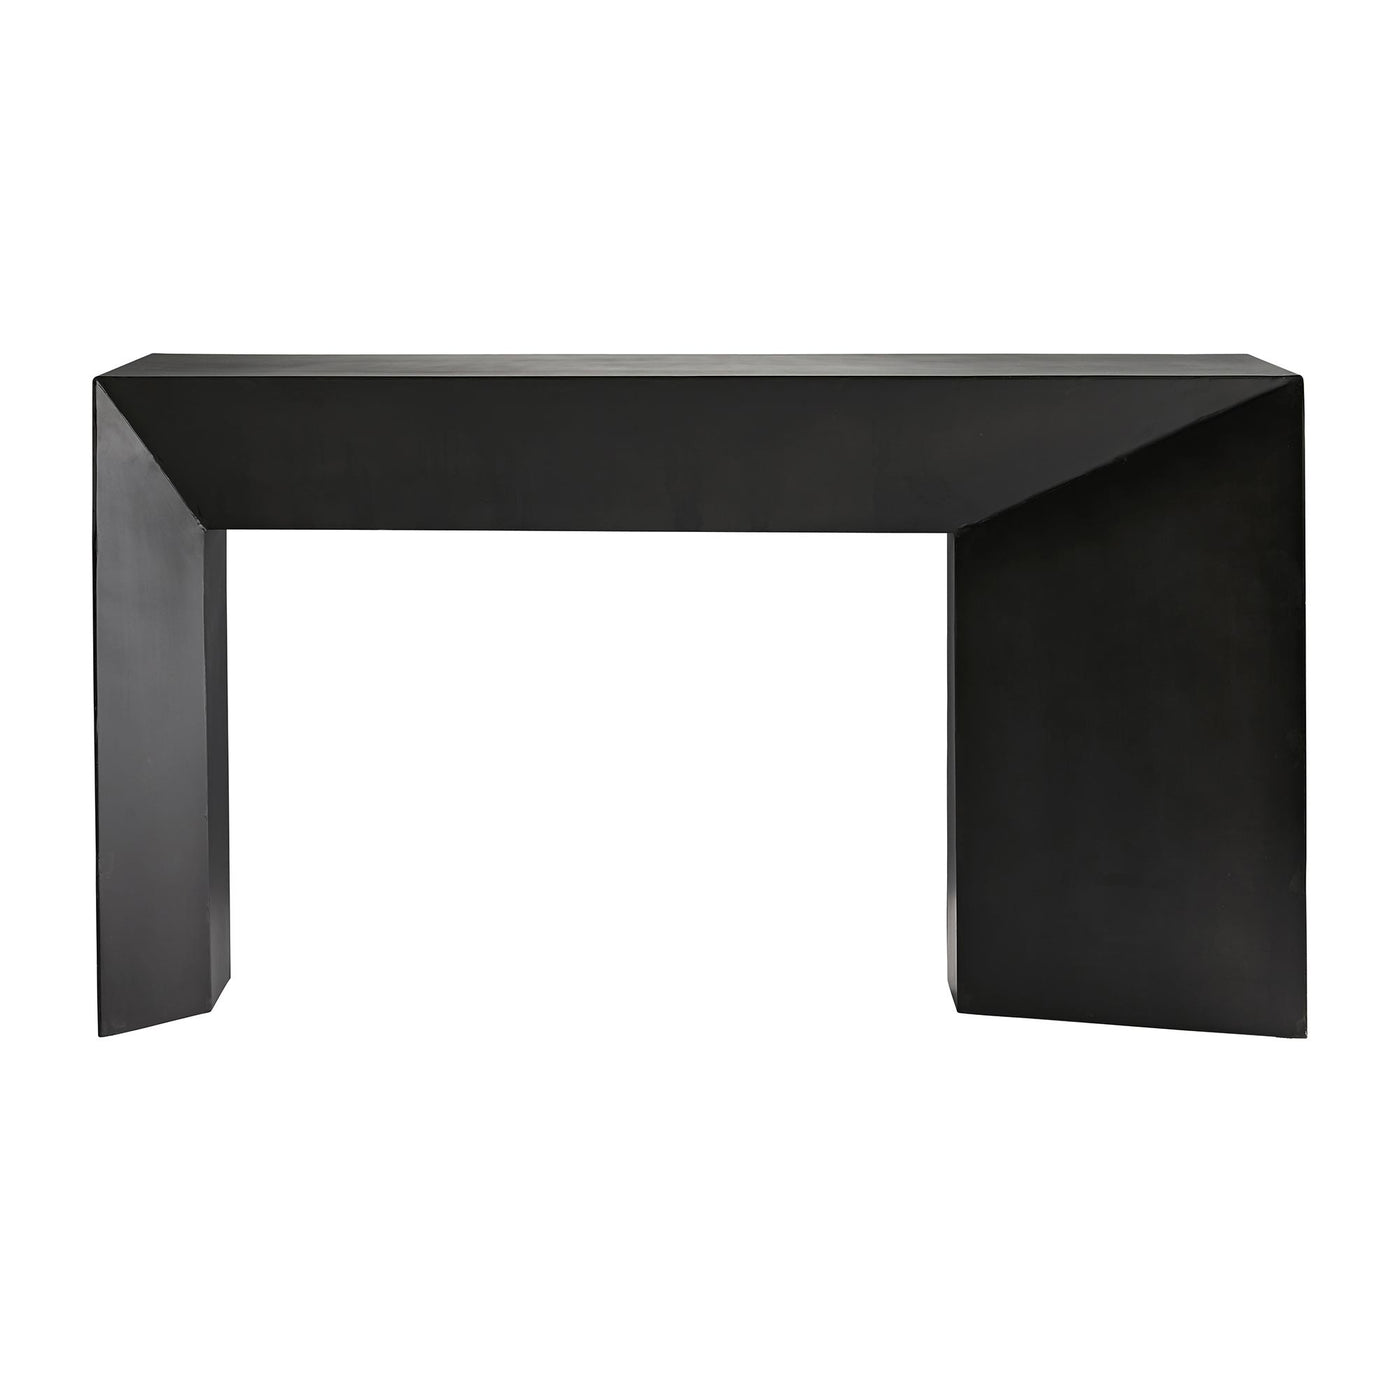 Arteriors Home Mckinley Console Iron Geometric Angle